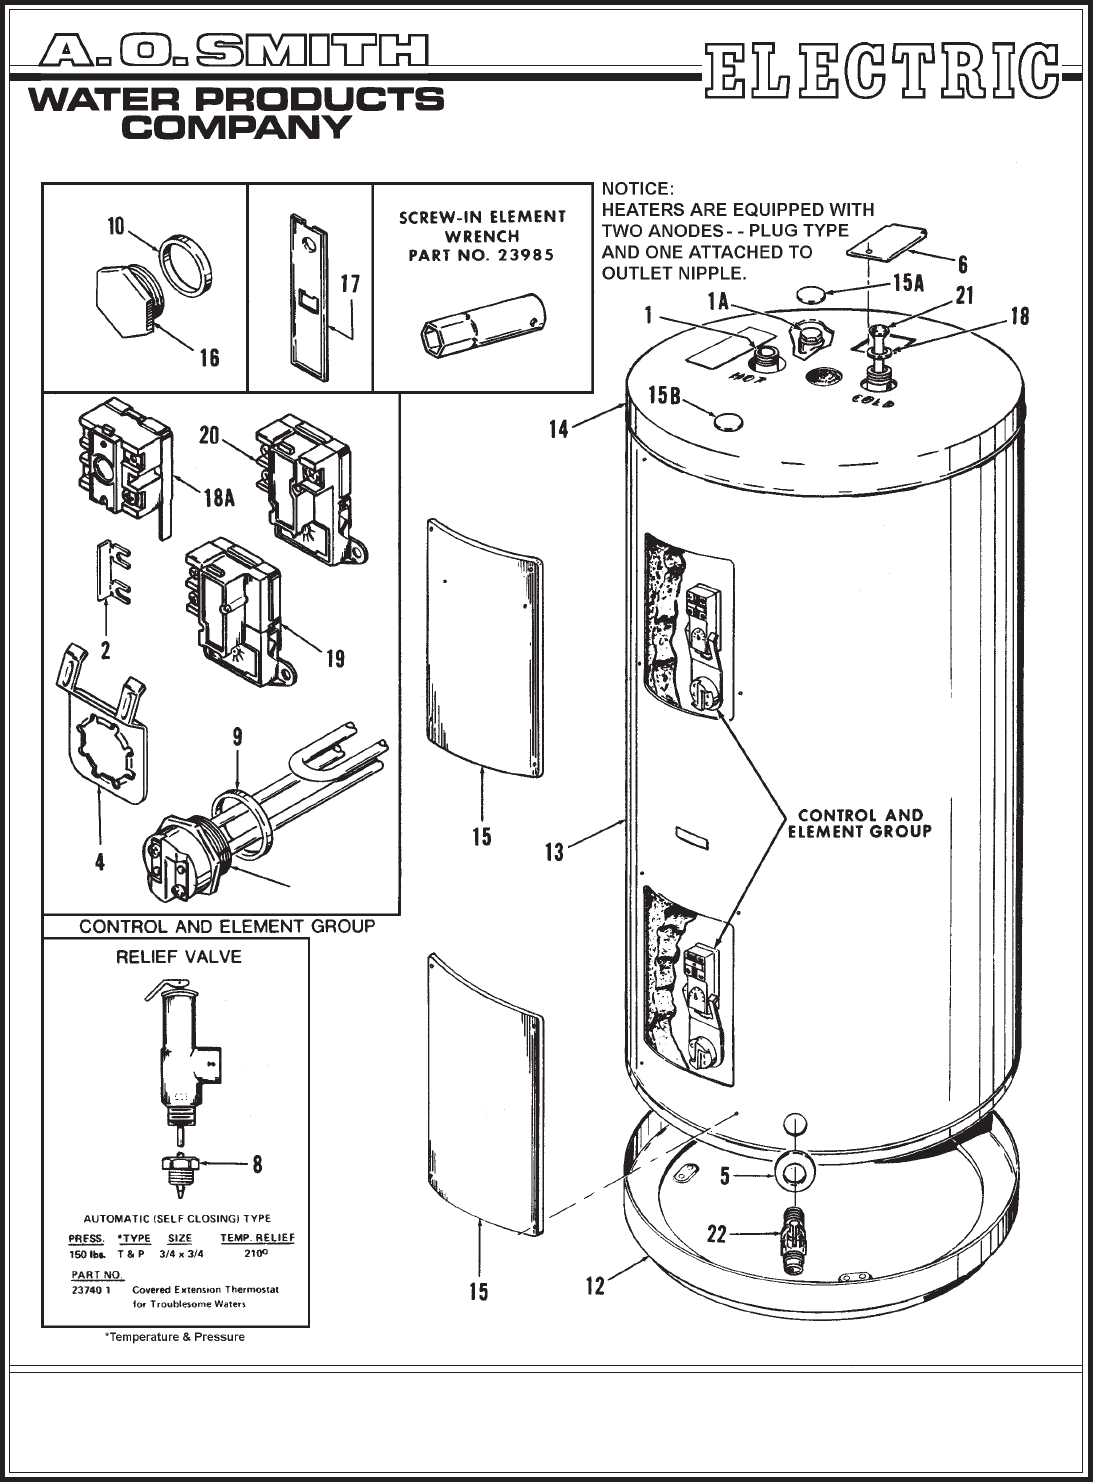 [DIAGRAM] Ao Smith Electric Water Heater Upper Thermostat